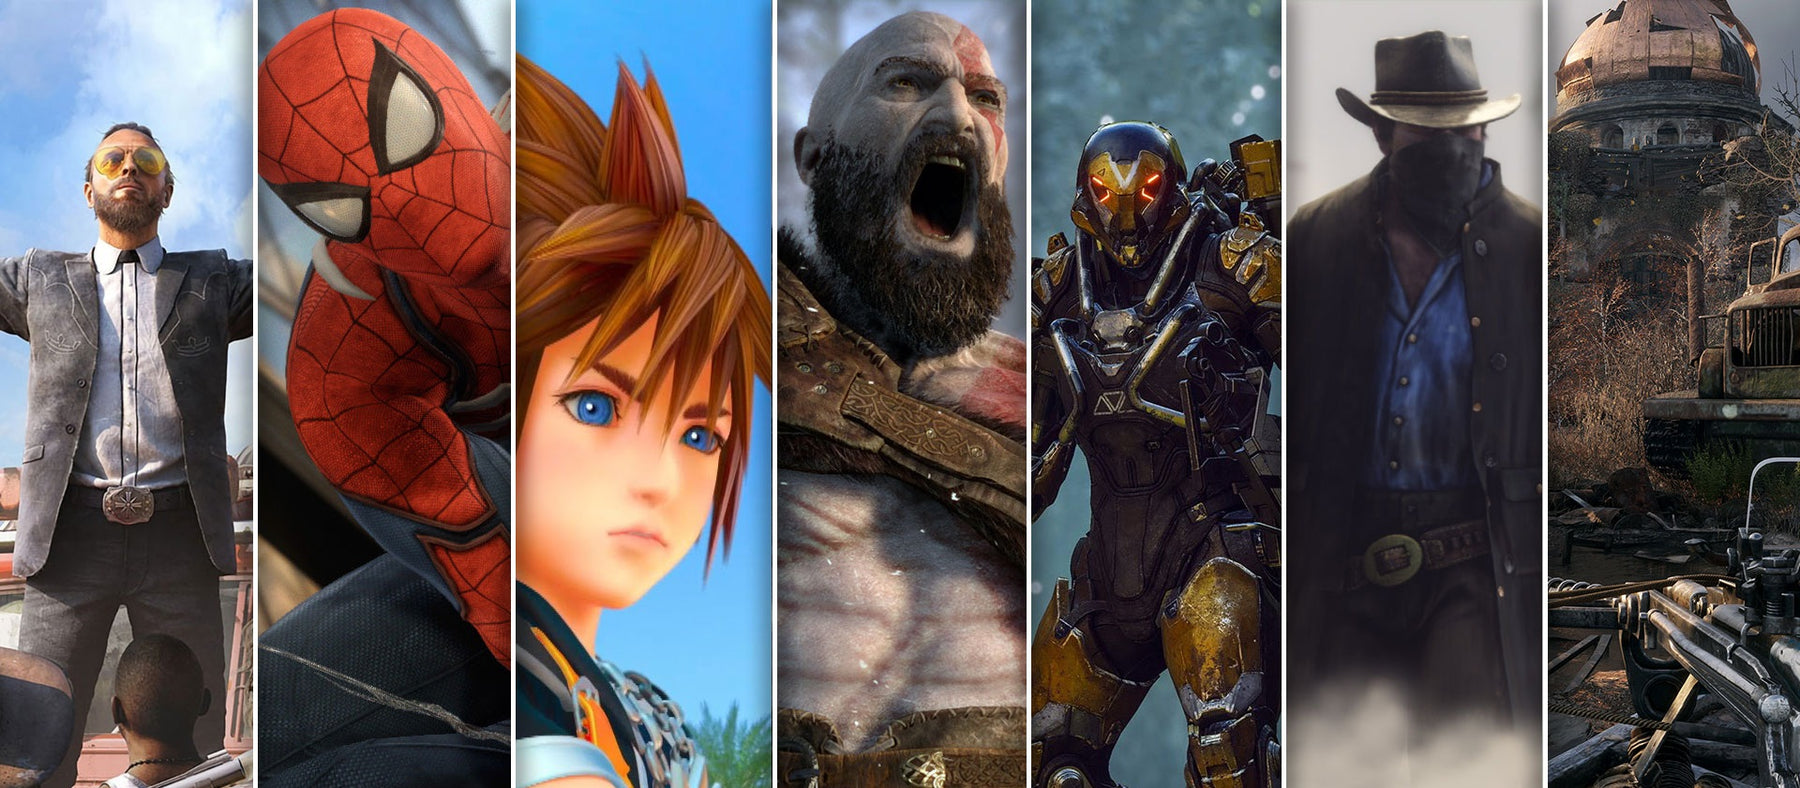 The Complete List Of The Most Popular Video Games in 2020